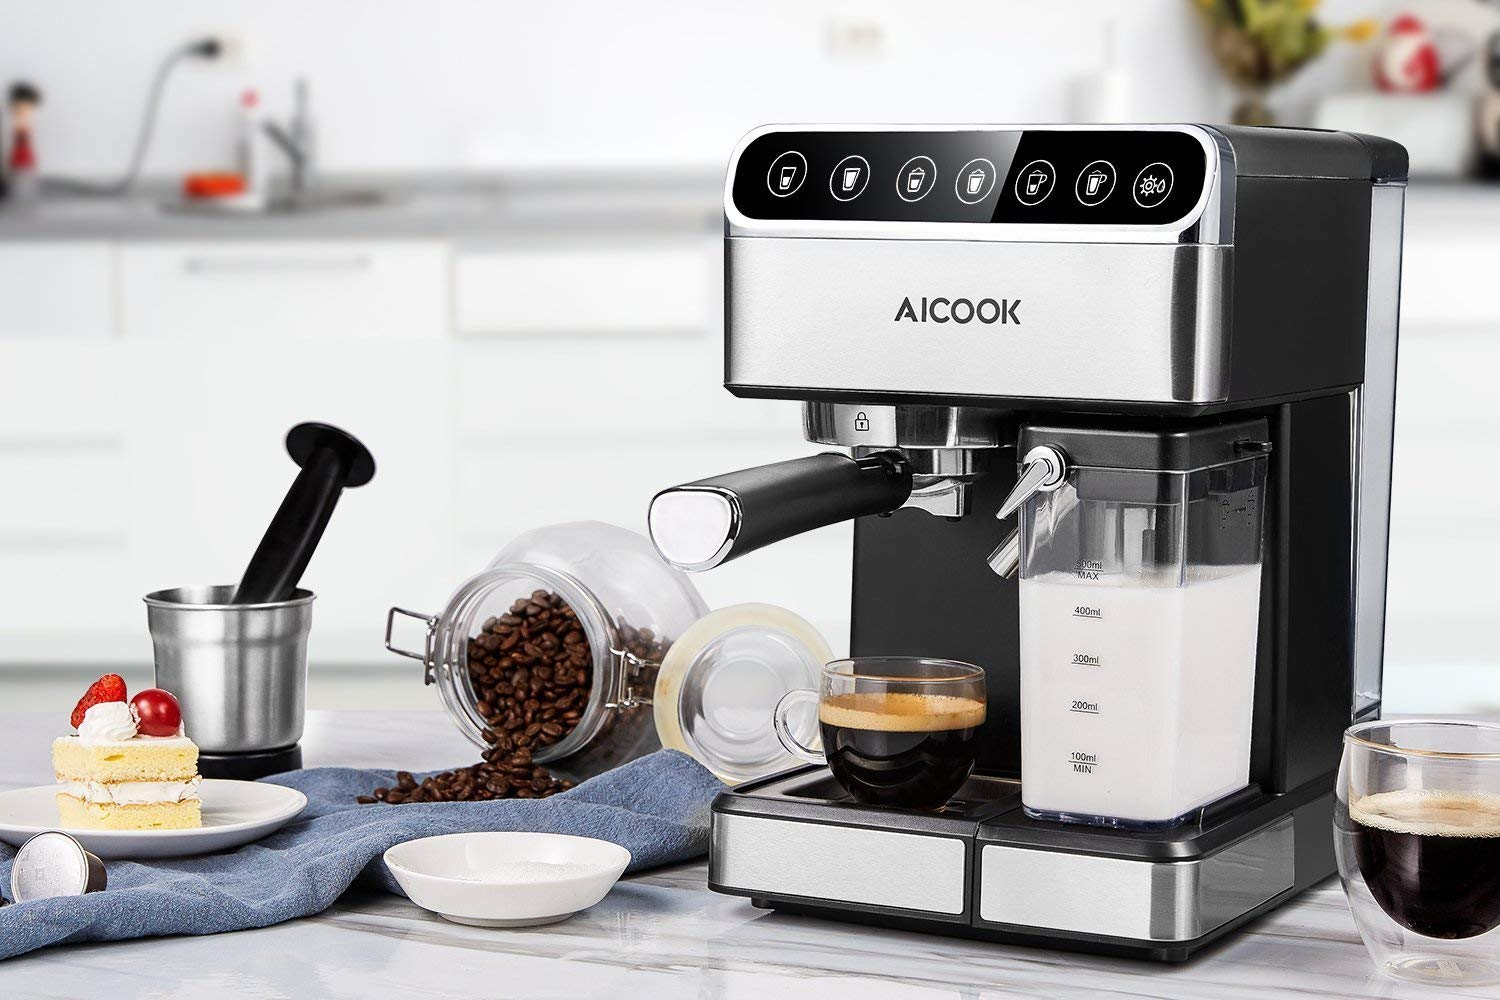 Aicook Espresso Machine, Barista Espresso Coffee Maker with One Touch Digital Screen, 15 Bar Pump and Automatic Milk Frother, Cappuccino Maker, Latte maker by AICOOK (Image #7)